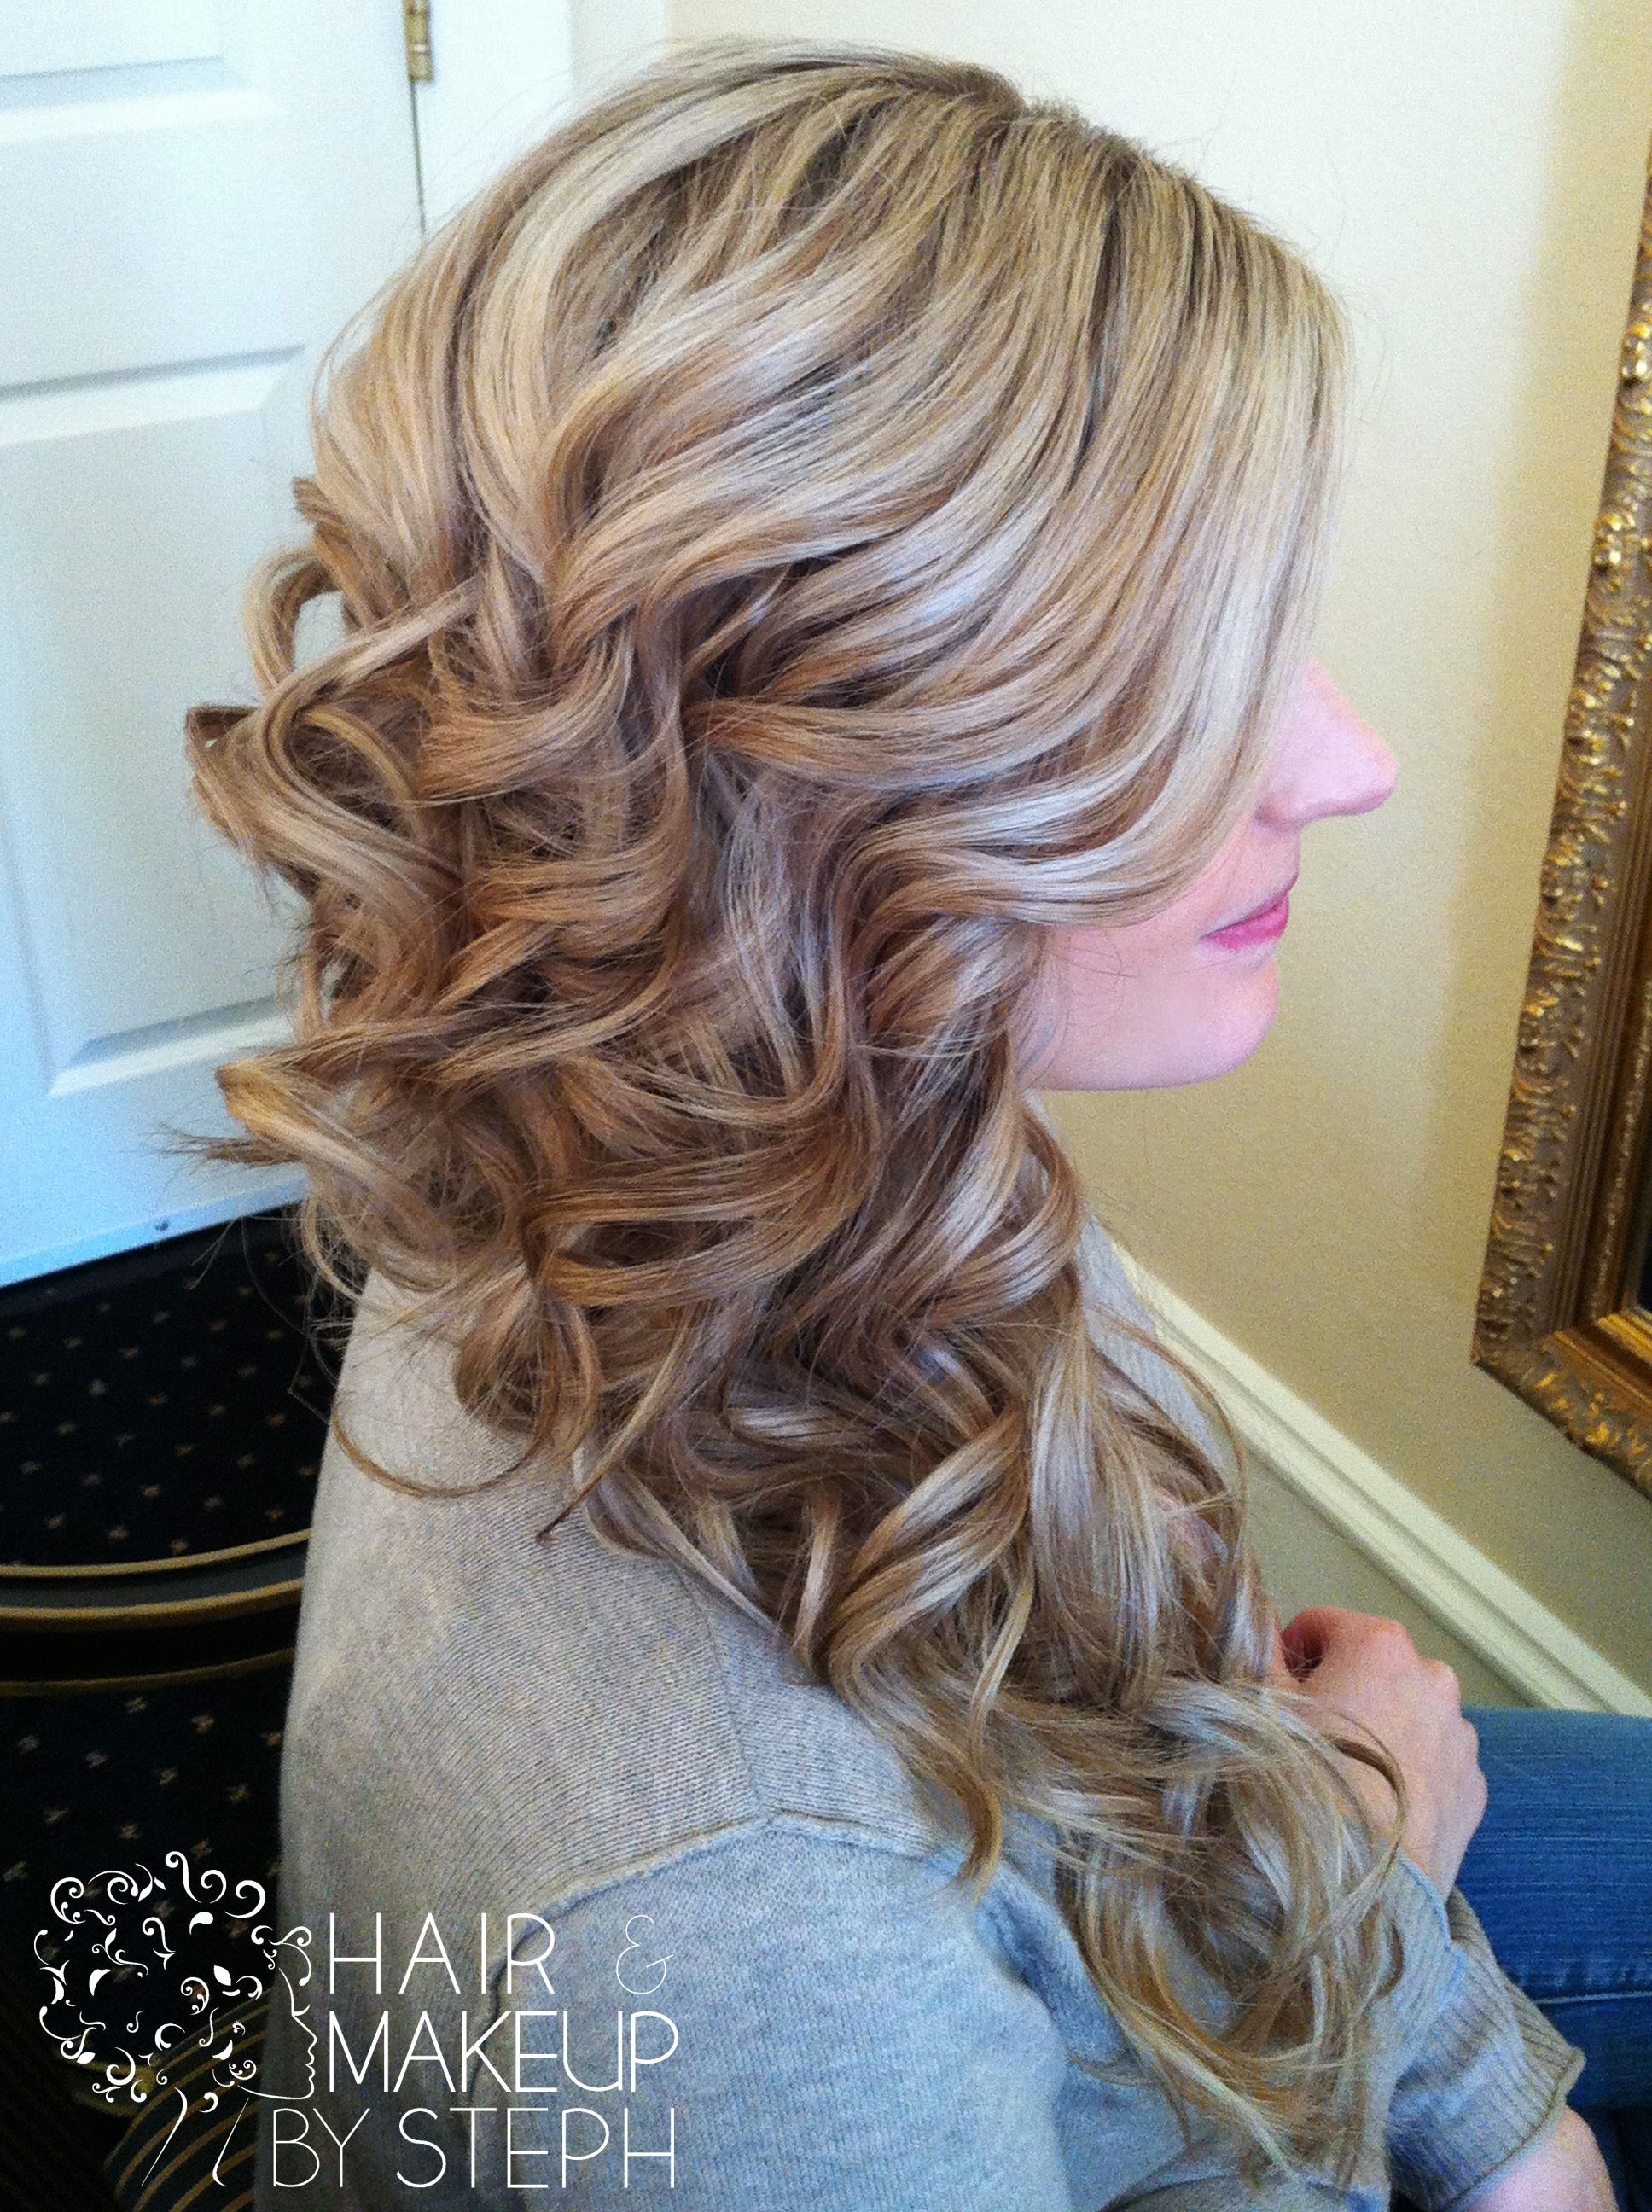 This girl is amazing so many good ideas for my hair and i love